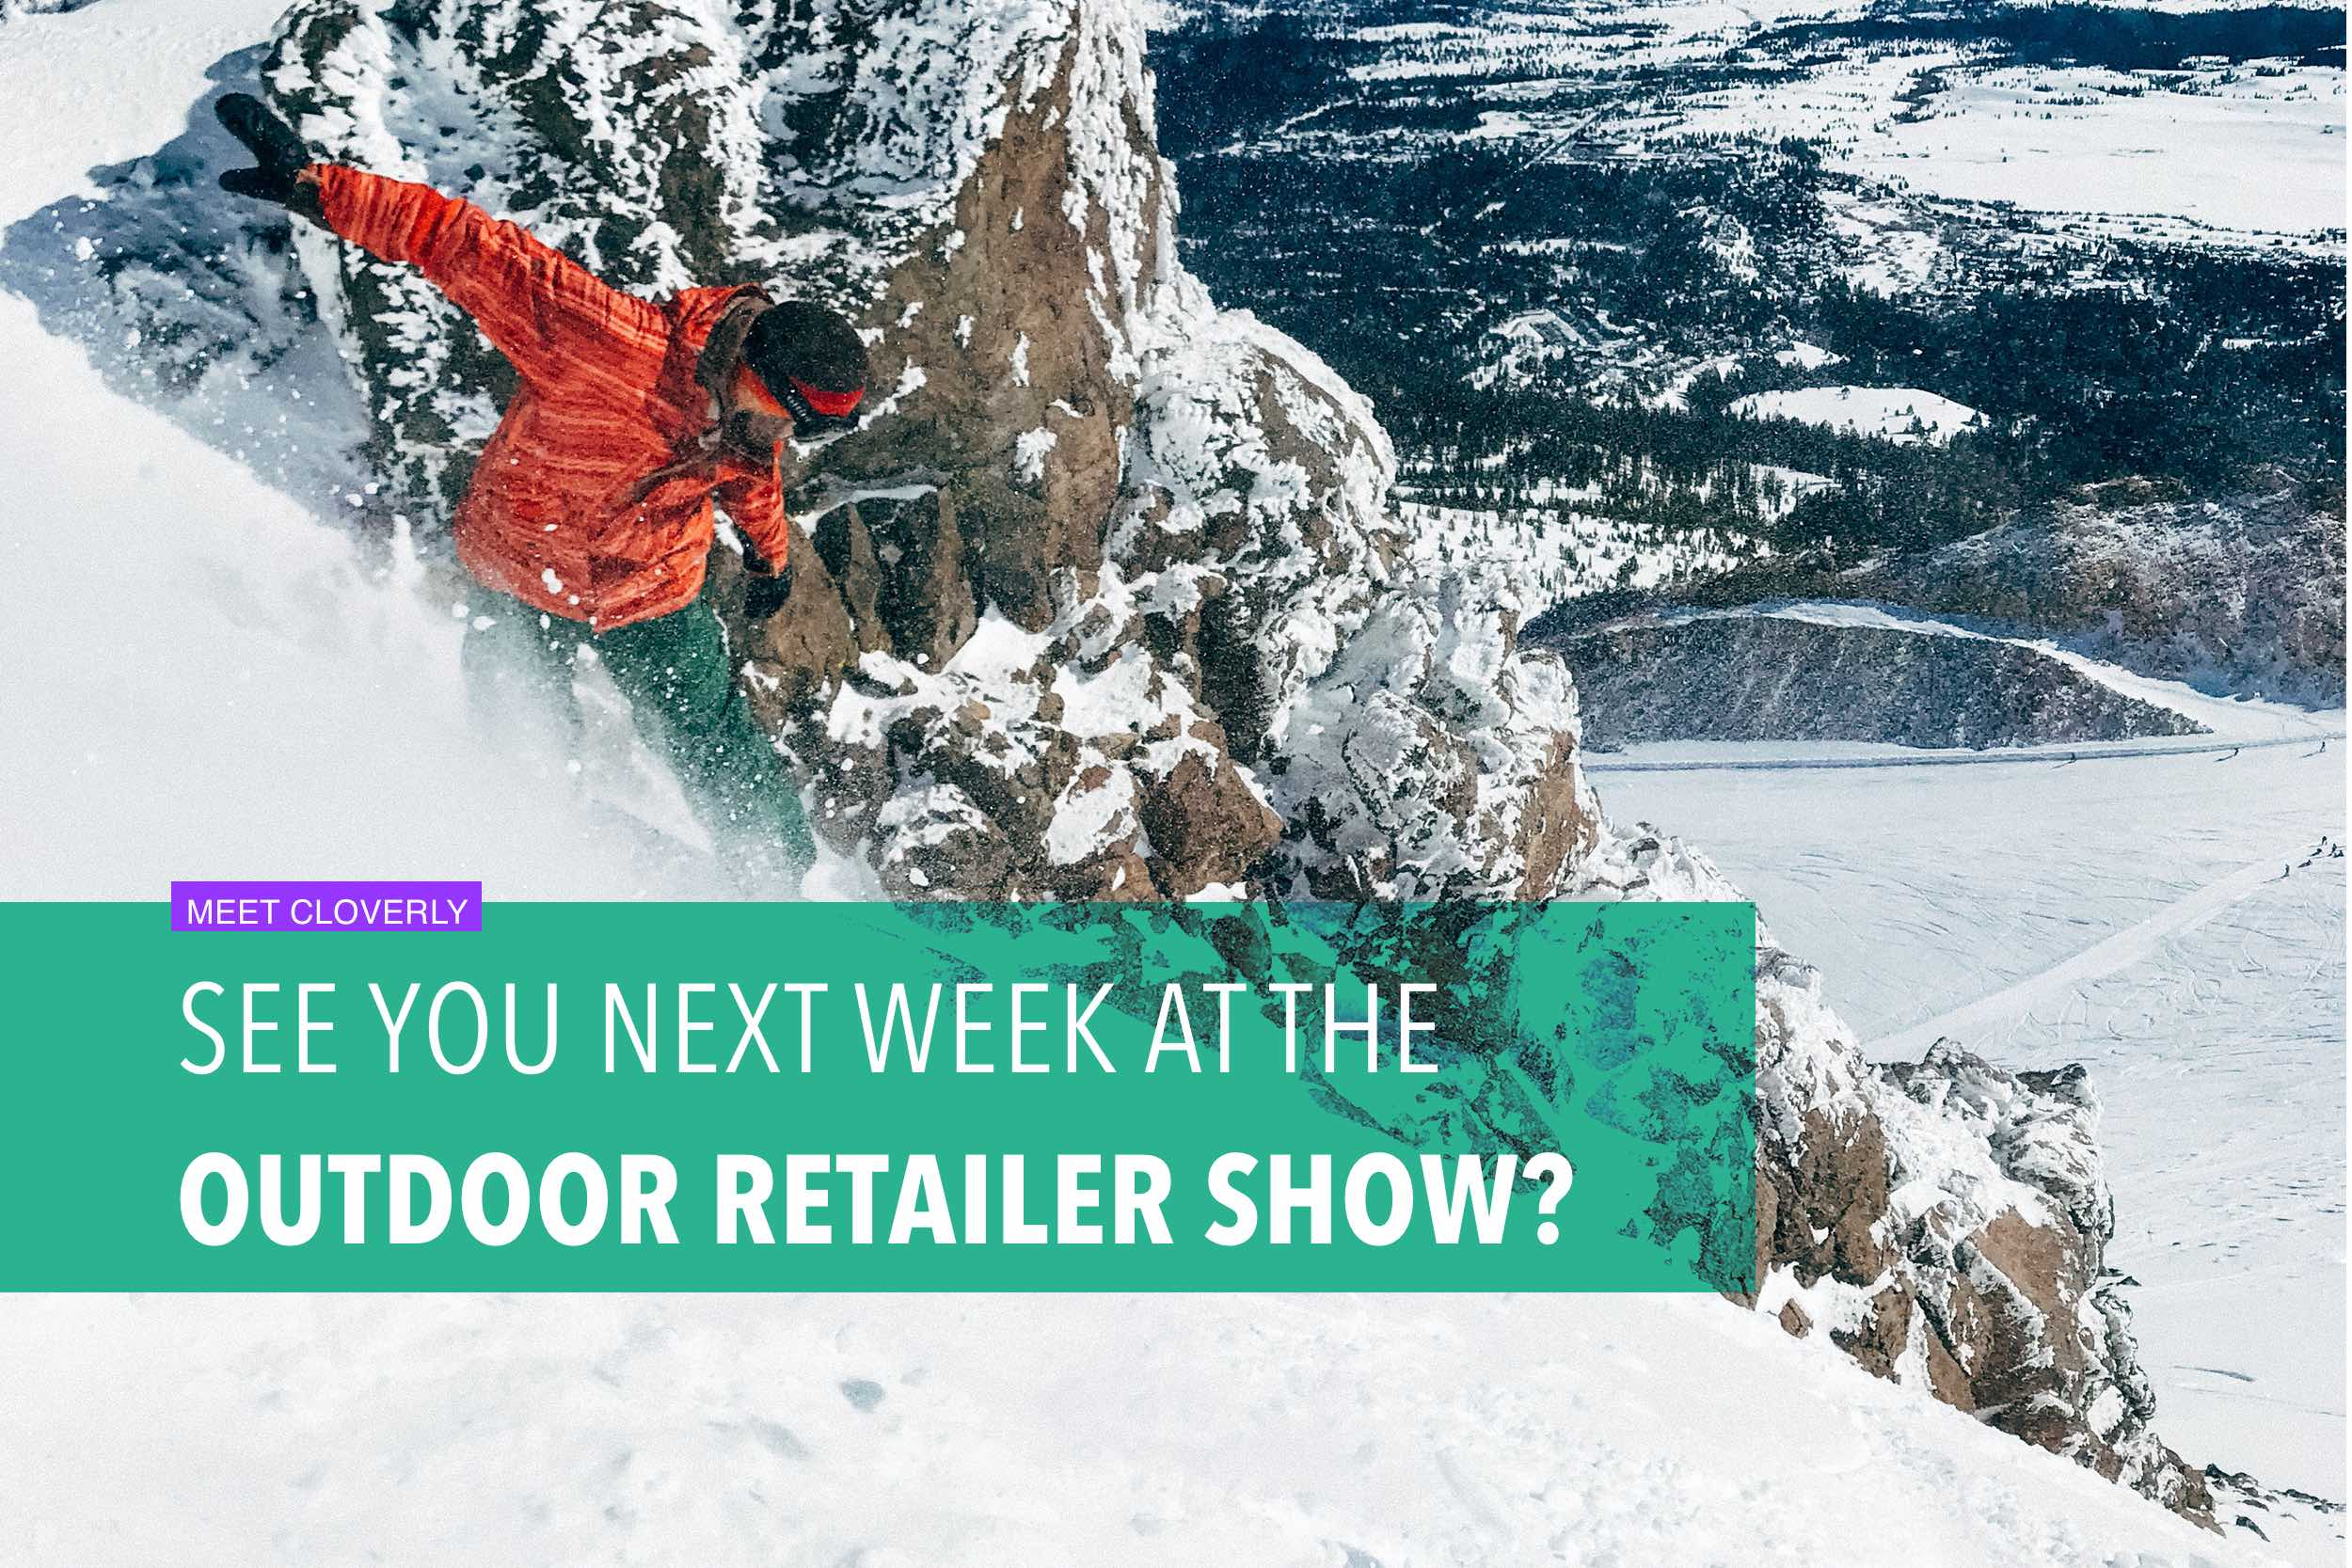 See you next week at the Outdoor Retailer Show?